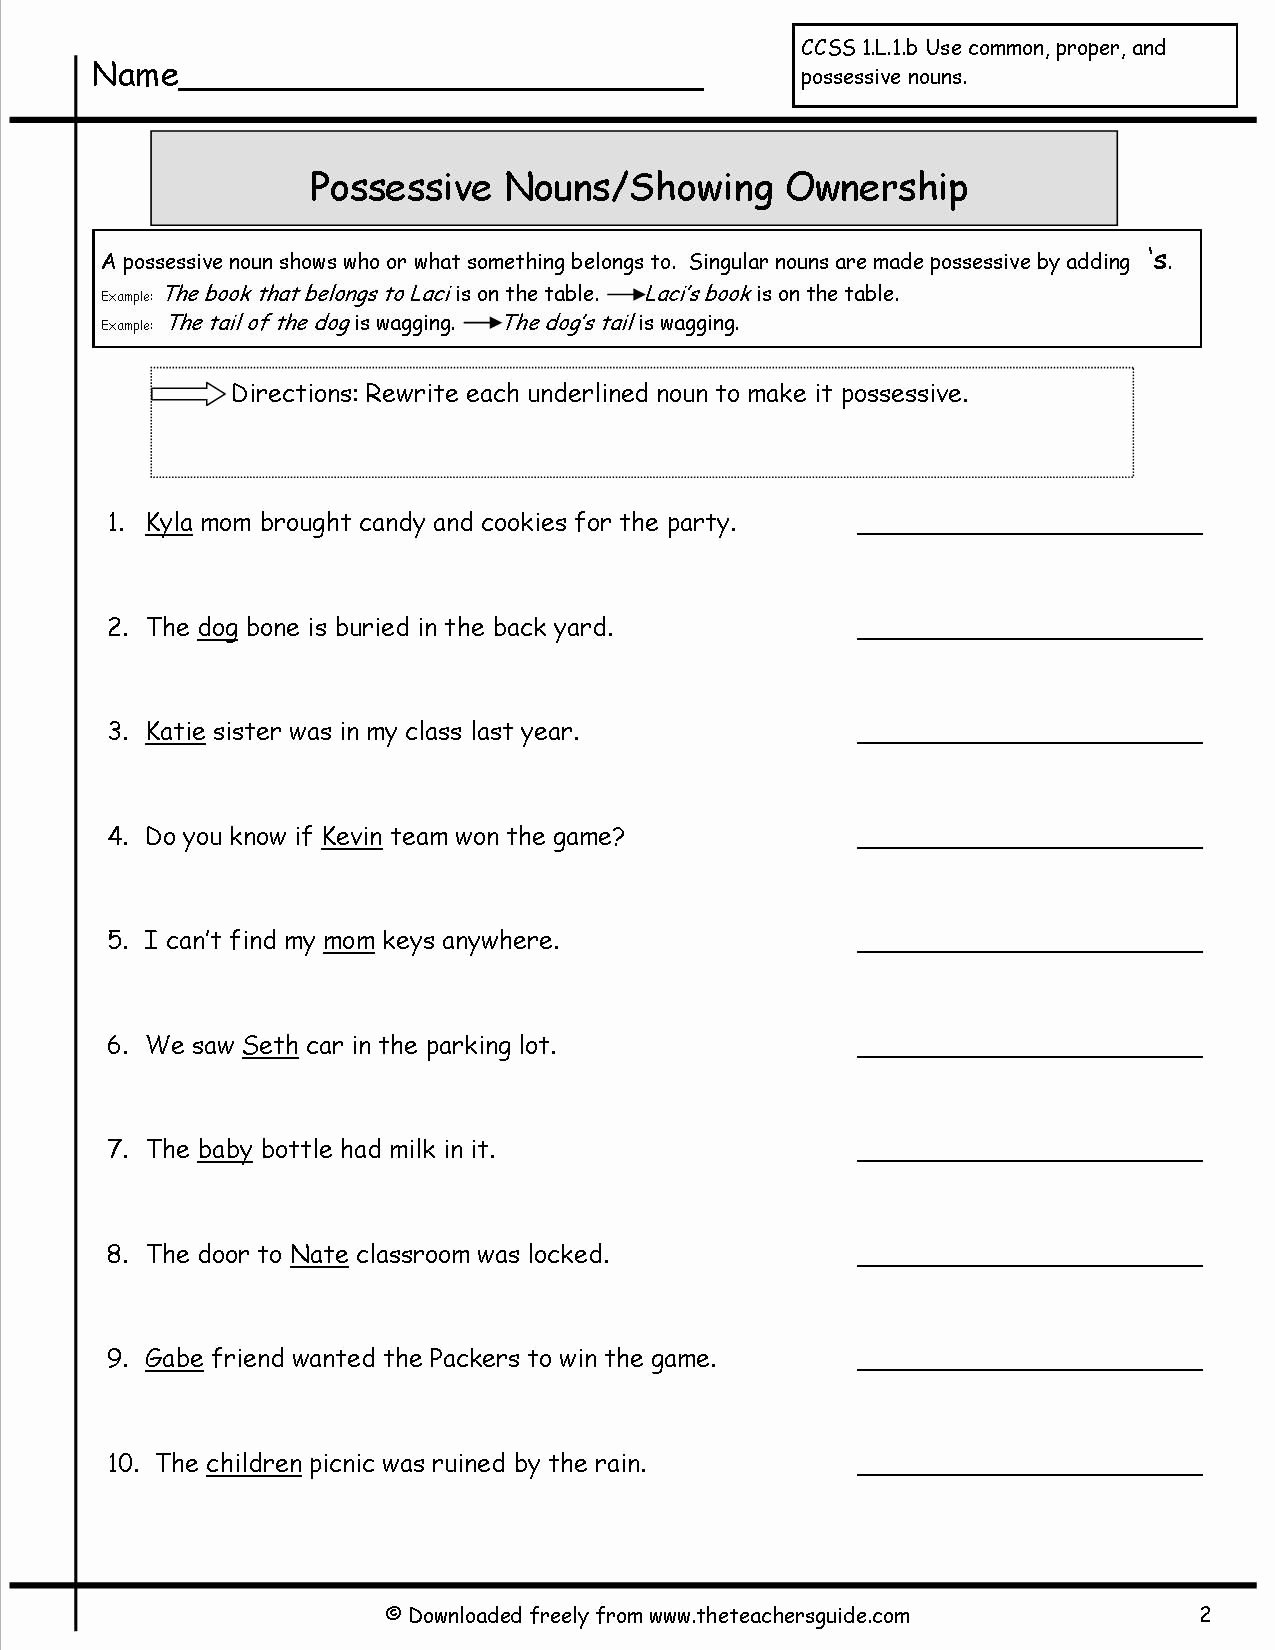 Possessive Noun Worksheet 2nd Grade Inspirational 37 Clever Possessive Nouns Worksheets Design S